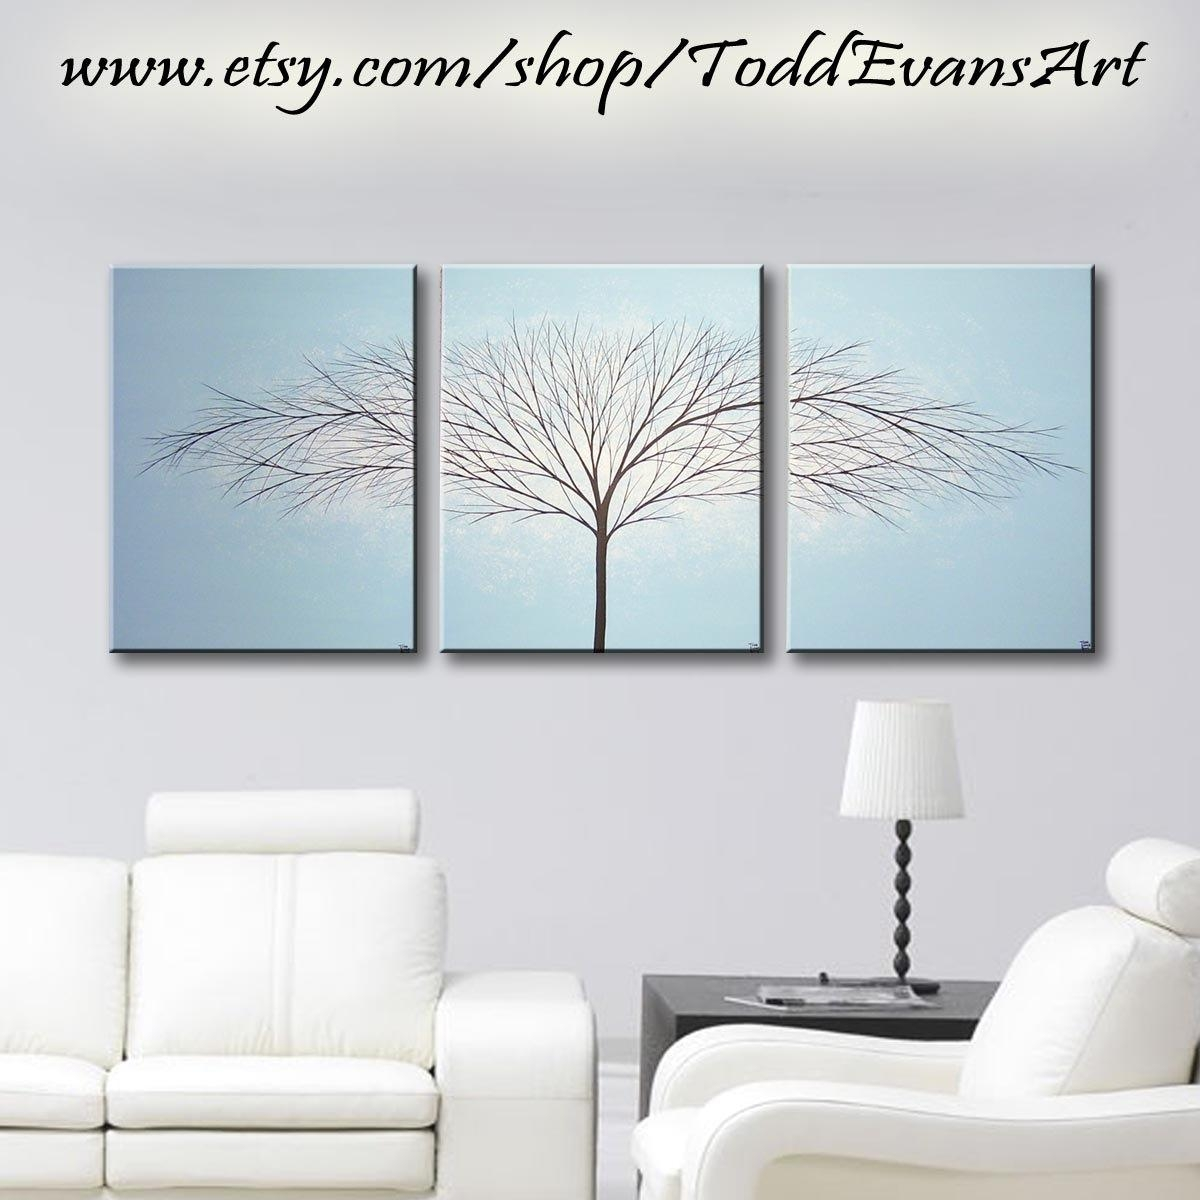 Large Wall Art 3 Piece Canvas Art Bedroom Wall Decor Tree Of intended for Three Piece Canvas Wall Art